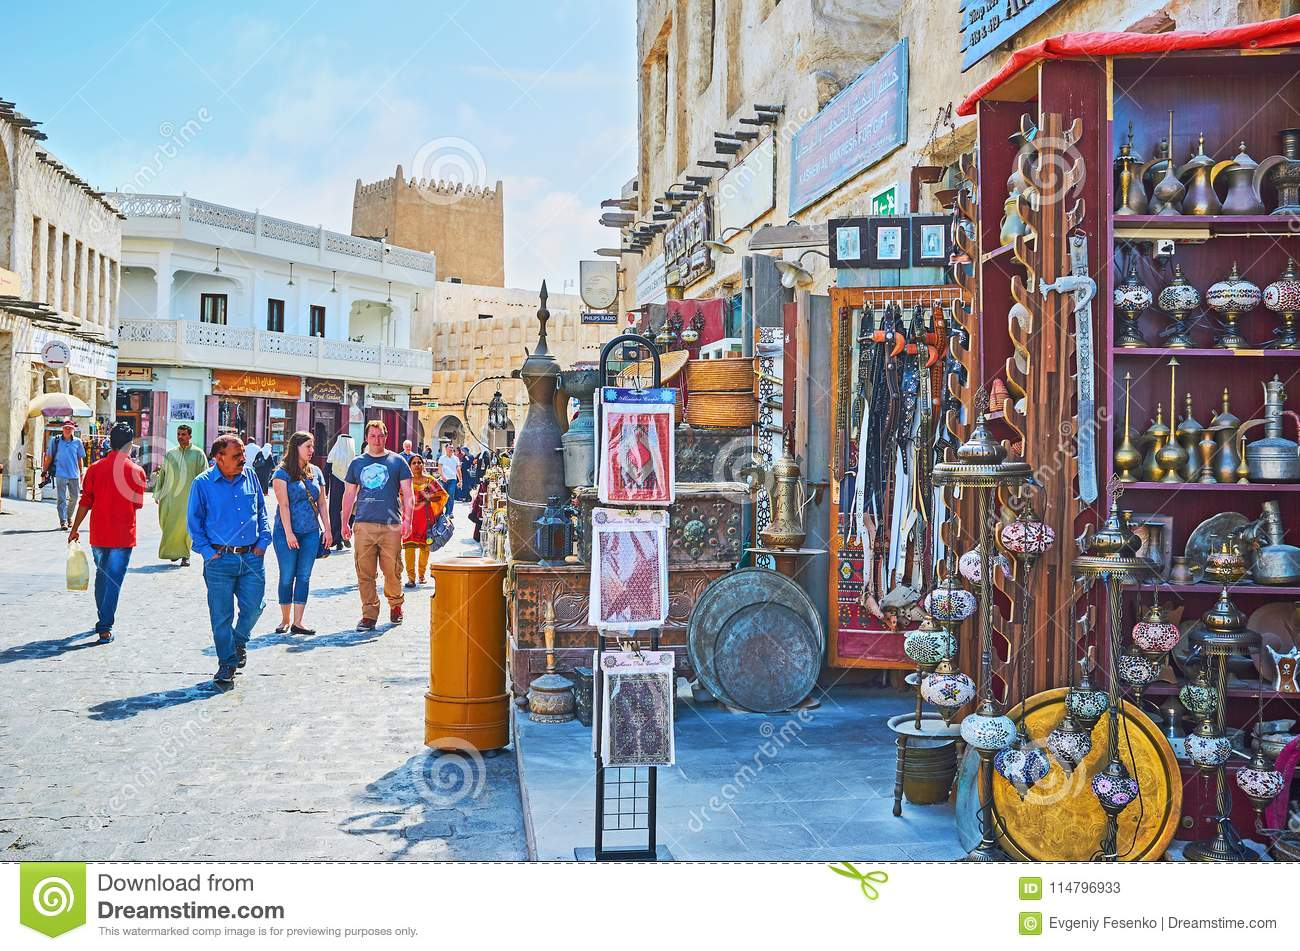 Antique Store In Souq Waqif, Doha, Qatar Editorial Stock Photo